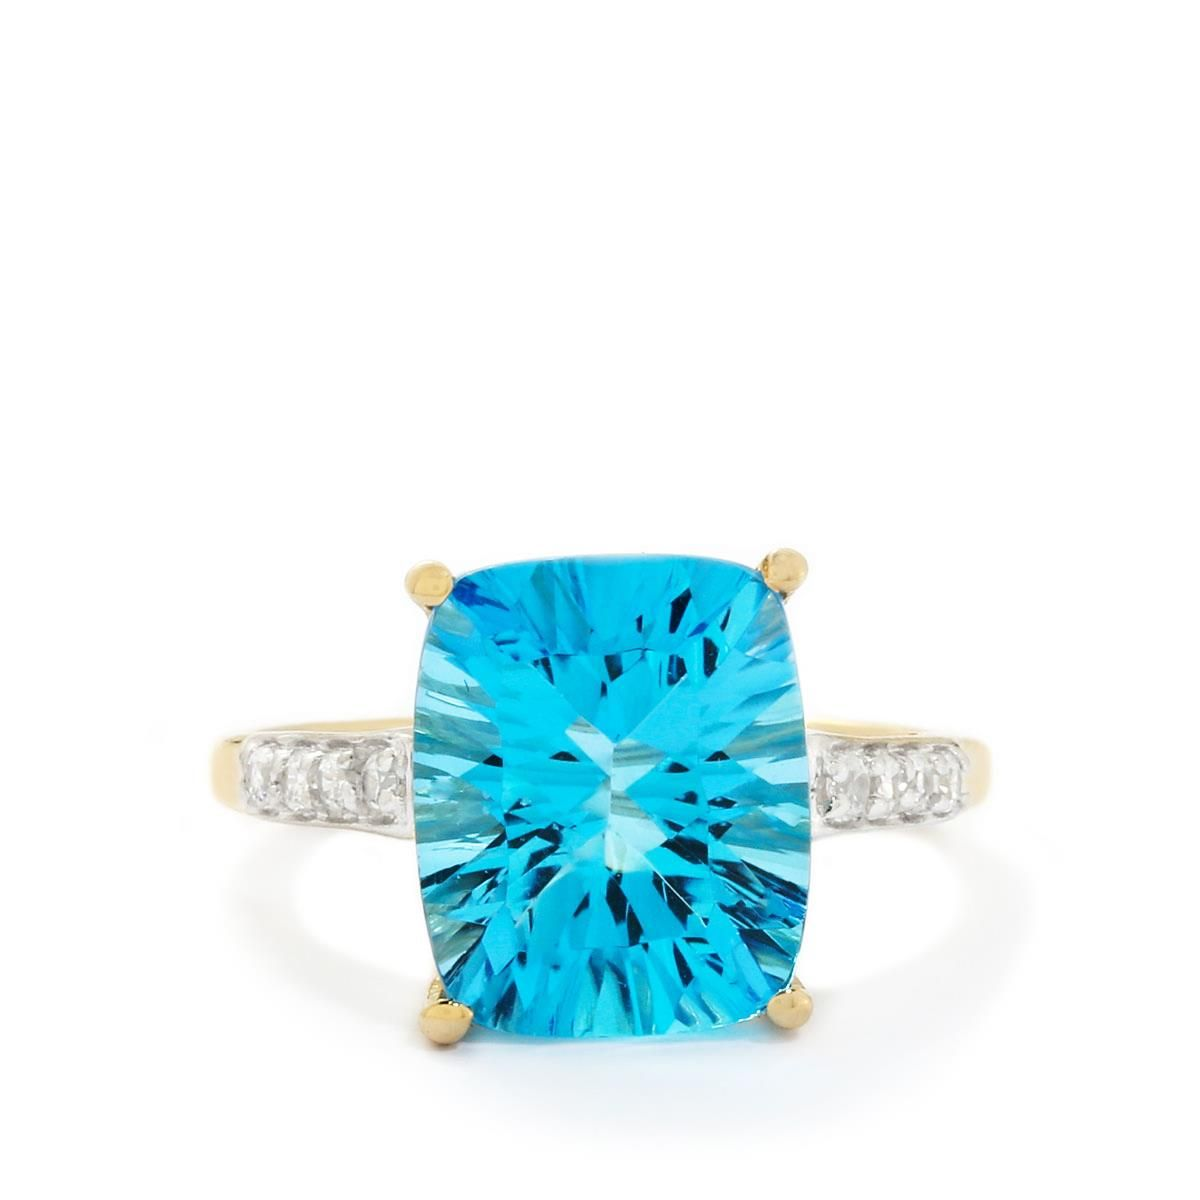 A sumptuous Ring from the Jacque Christie collection, made of 9K Gold featuring 6.53cts of amazing Swiss Blue Topaz and White Zircon.